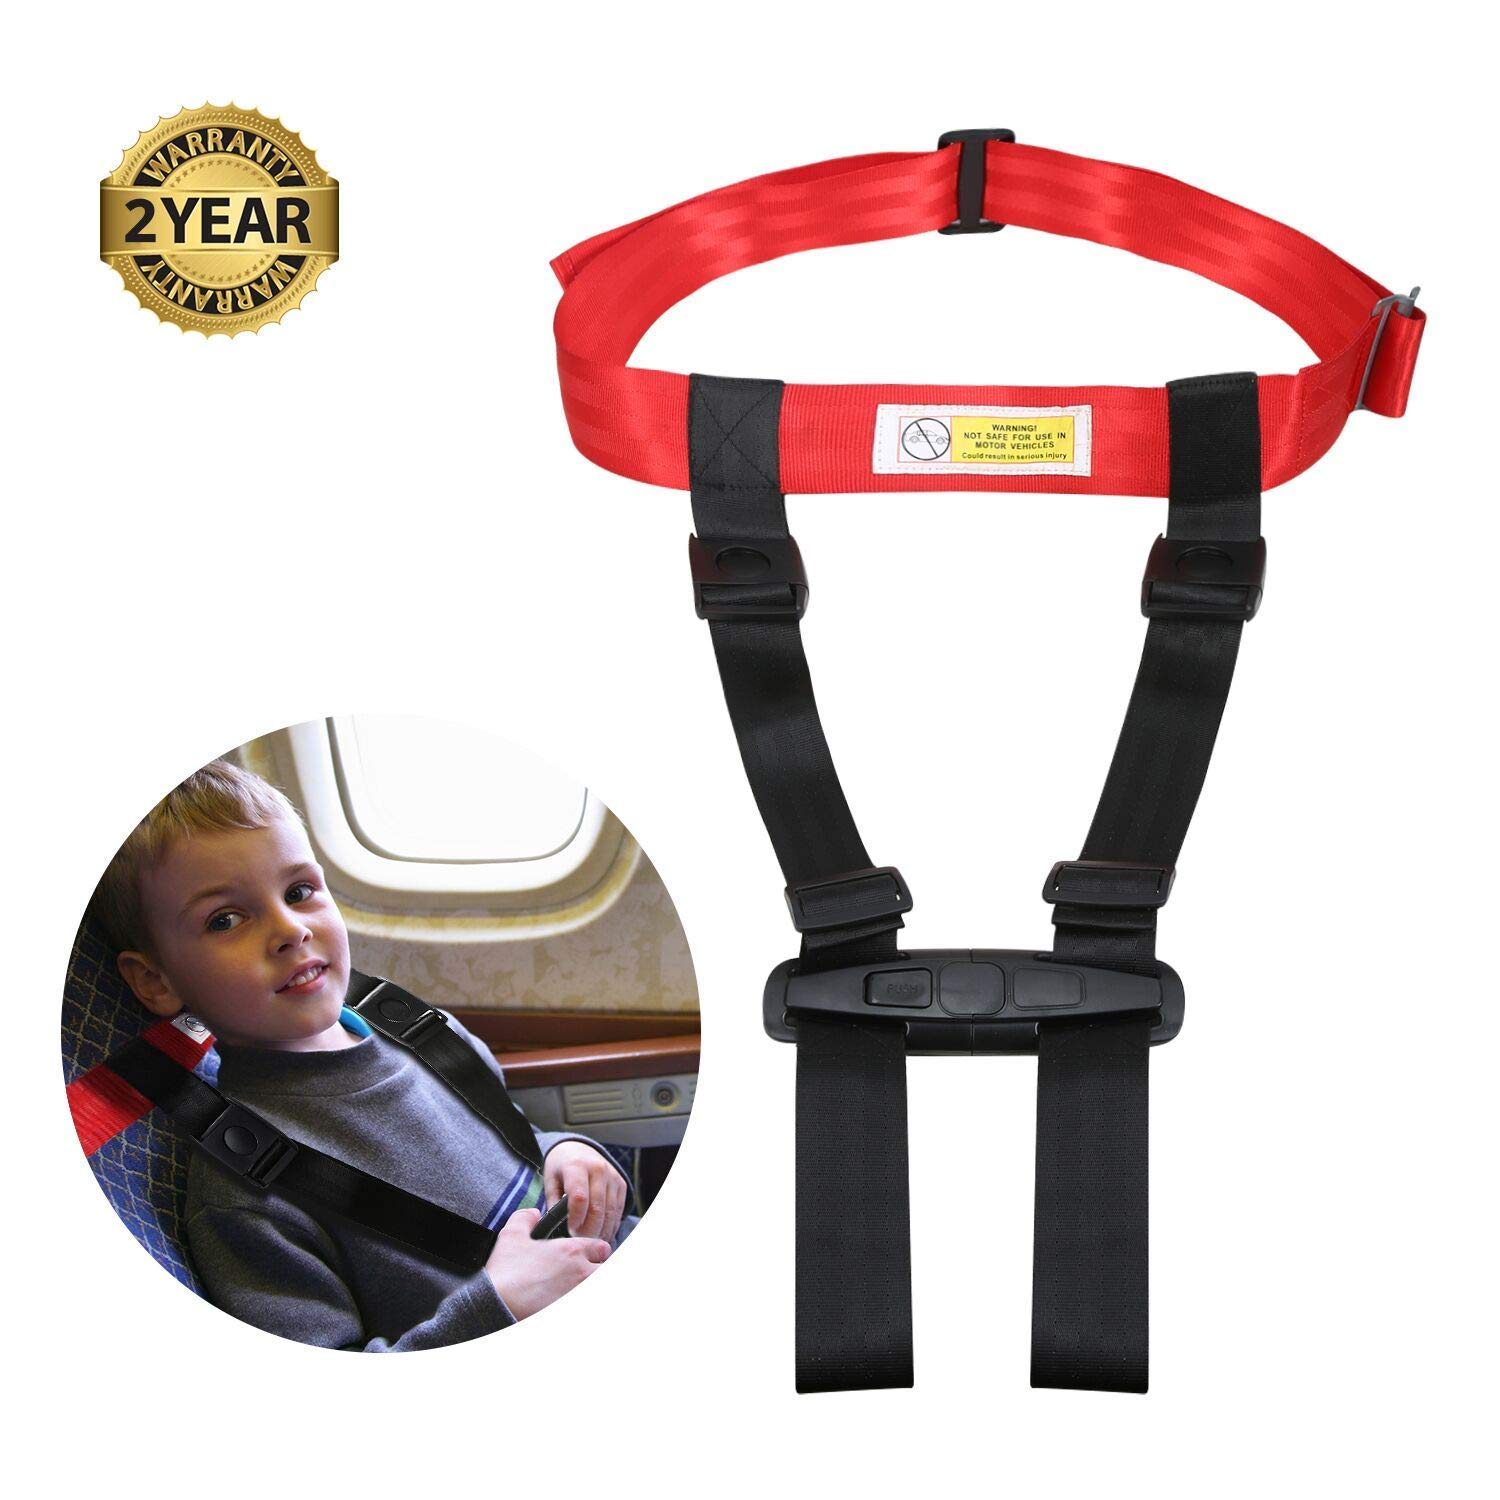 Child Airplane Travel Safety Harness Approved by FAA, Clip Strap Restraint System with Safe Airplane Cares Restraining Fly Travel Plane for Toddler Kids Child Infant by Mestron (Image #1)